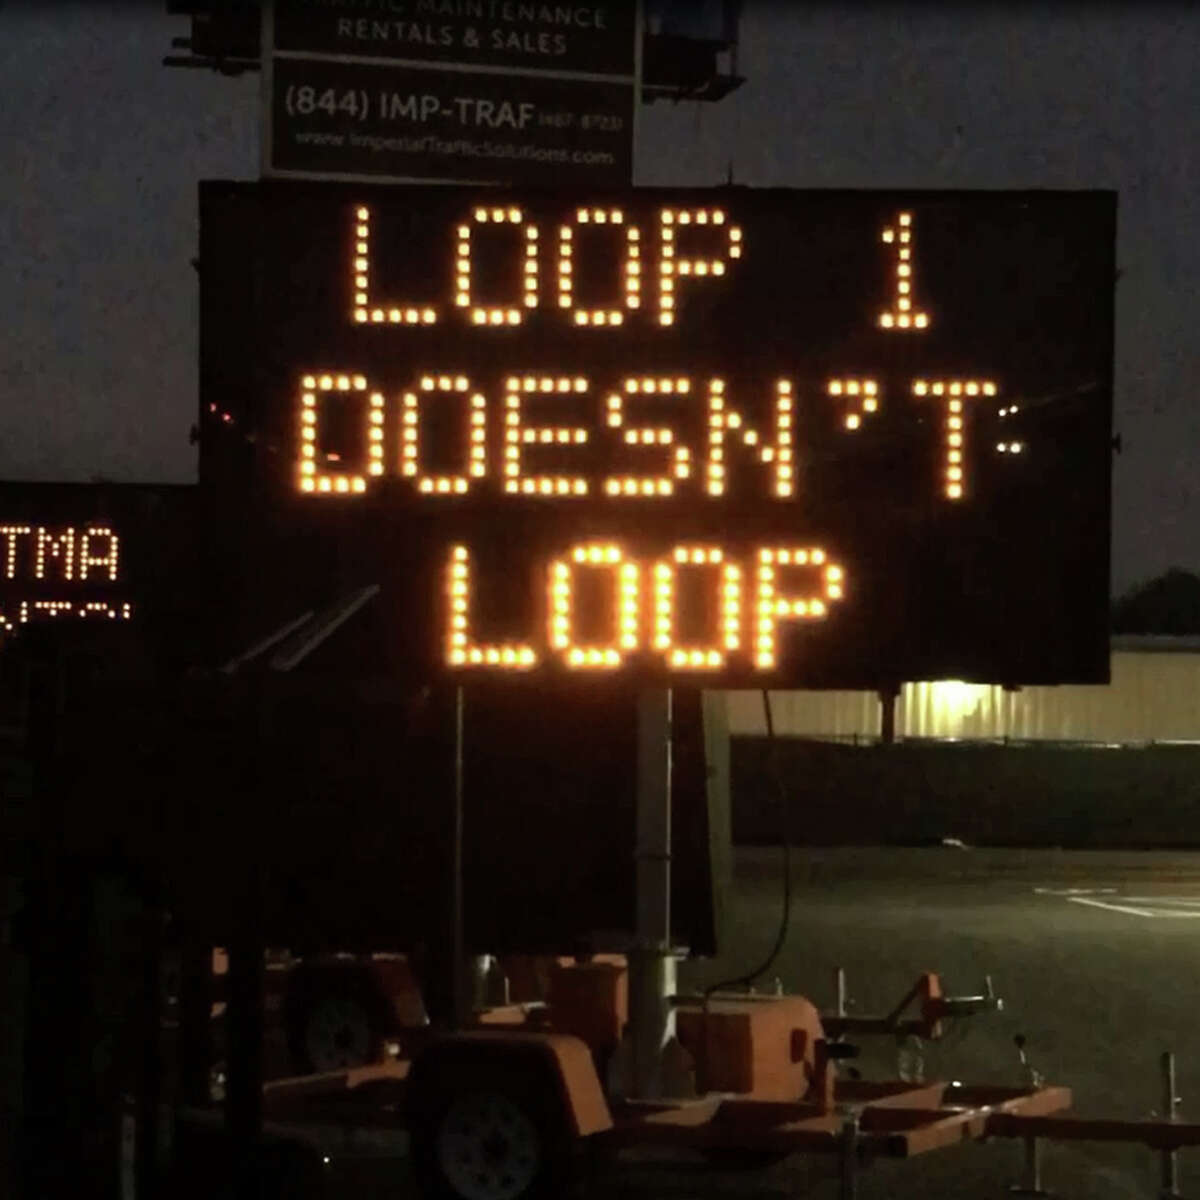 A video of a sign seen along Highway 71 in Austin offers traffic tips for SXSW visitors has gone viral on social media.